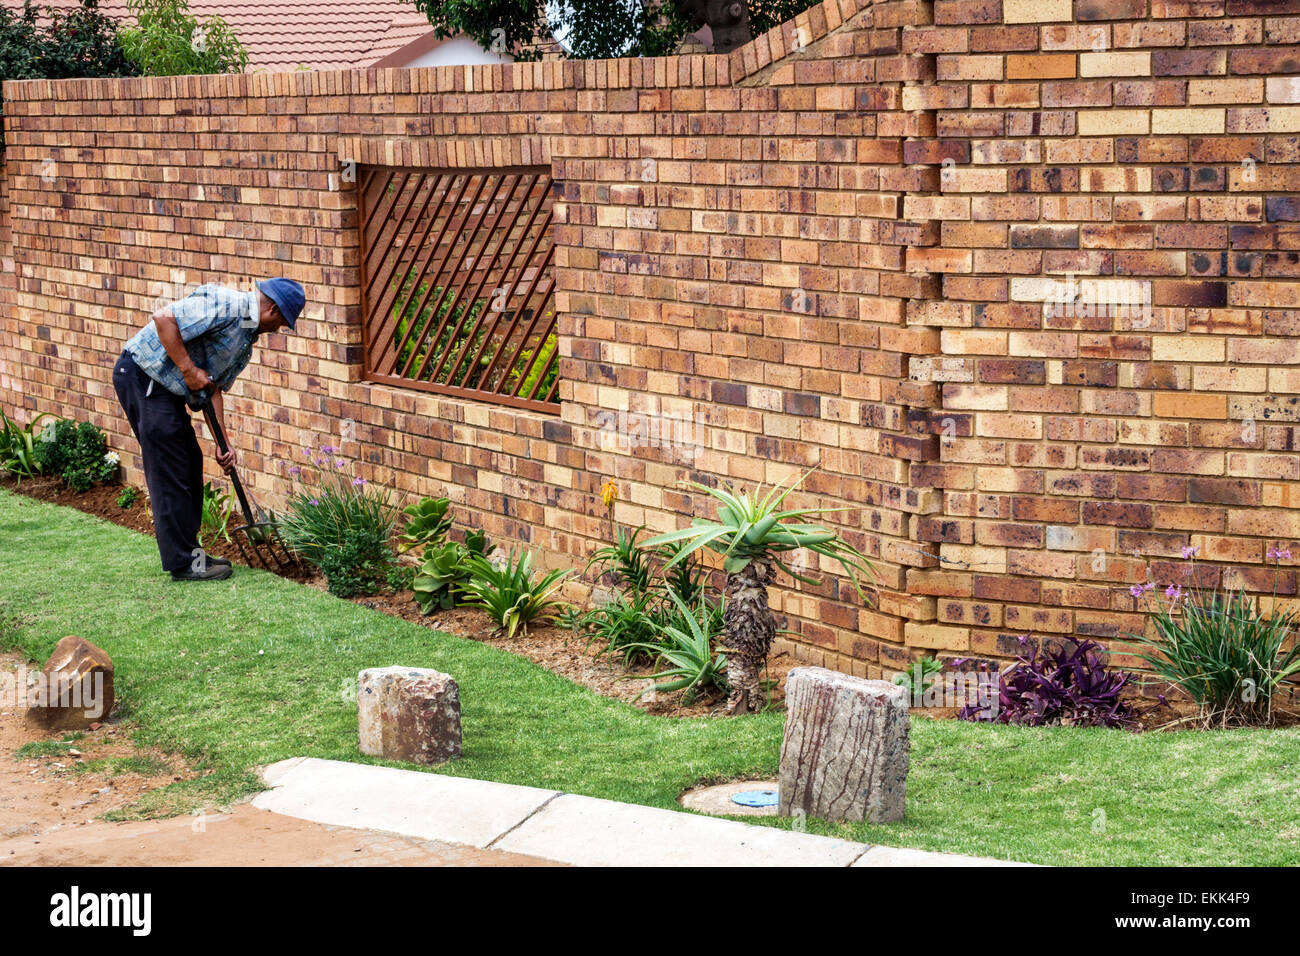 Johannesburg South Africa African Soweto Black Man Gardening Landscape  Landscaping House Home Brick Wall